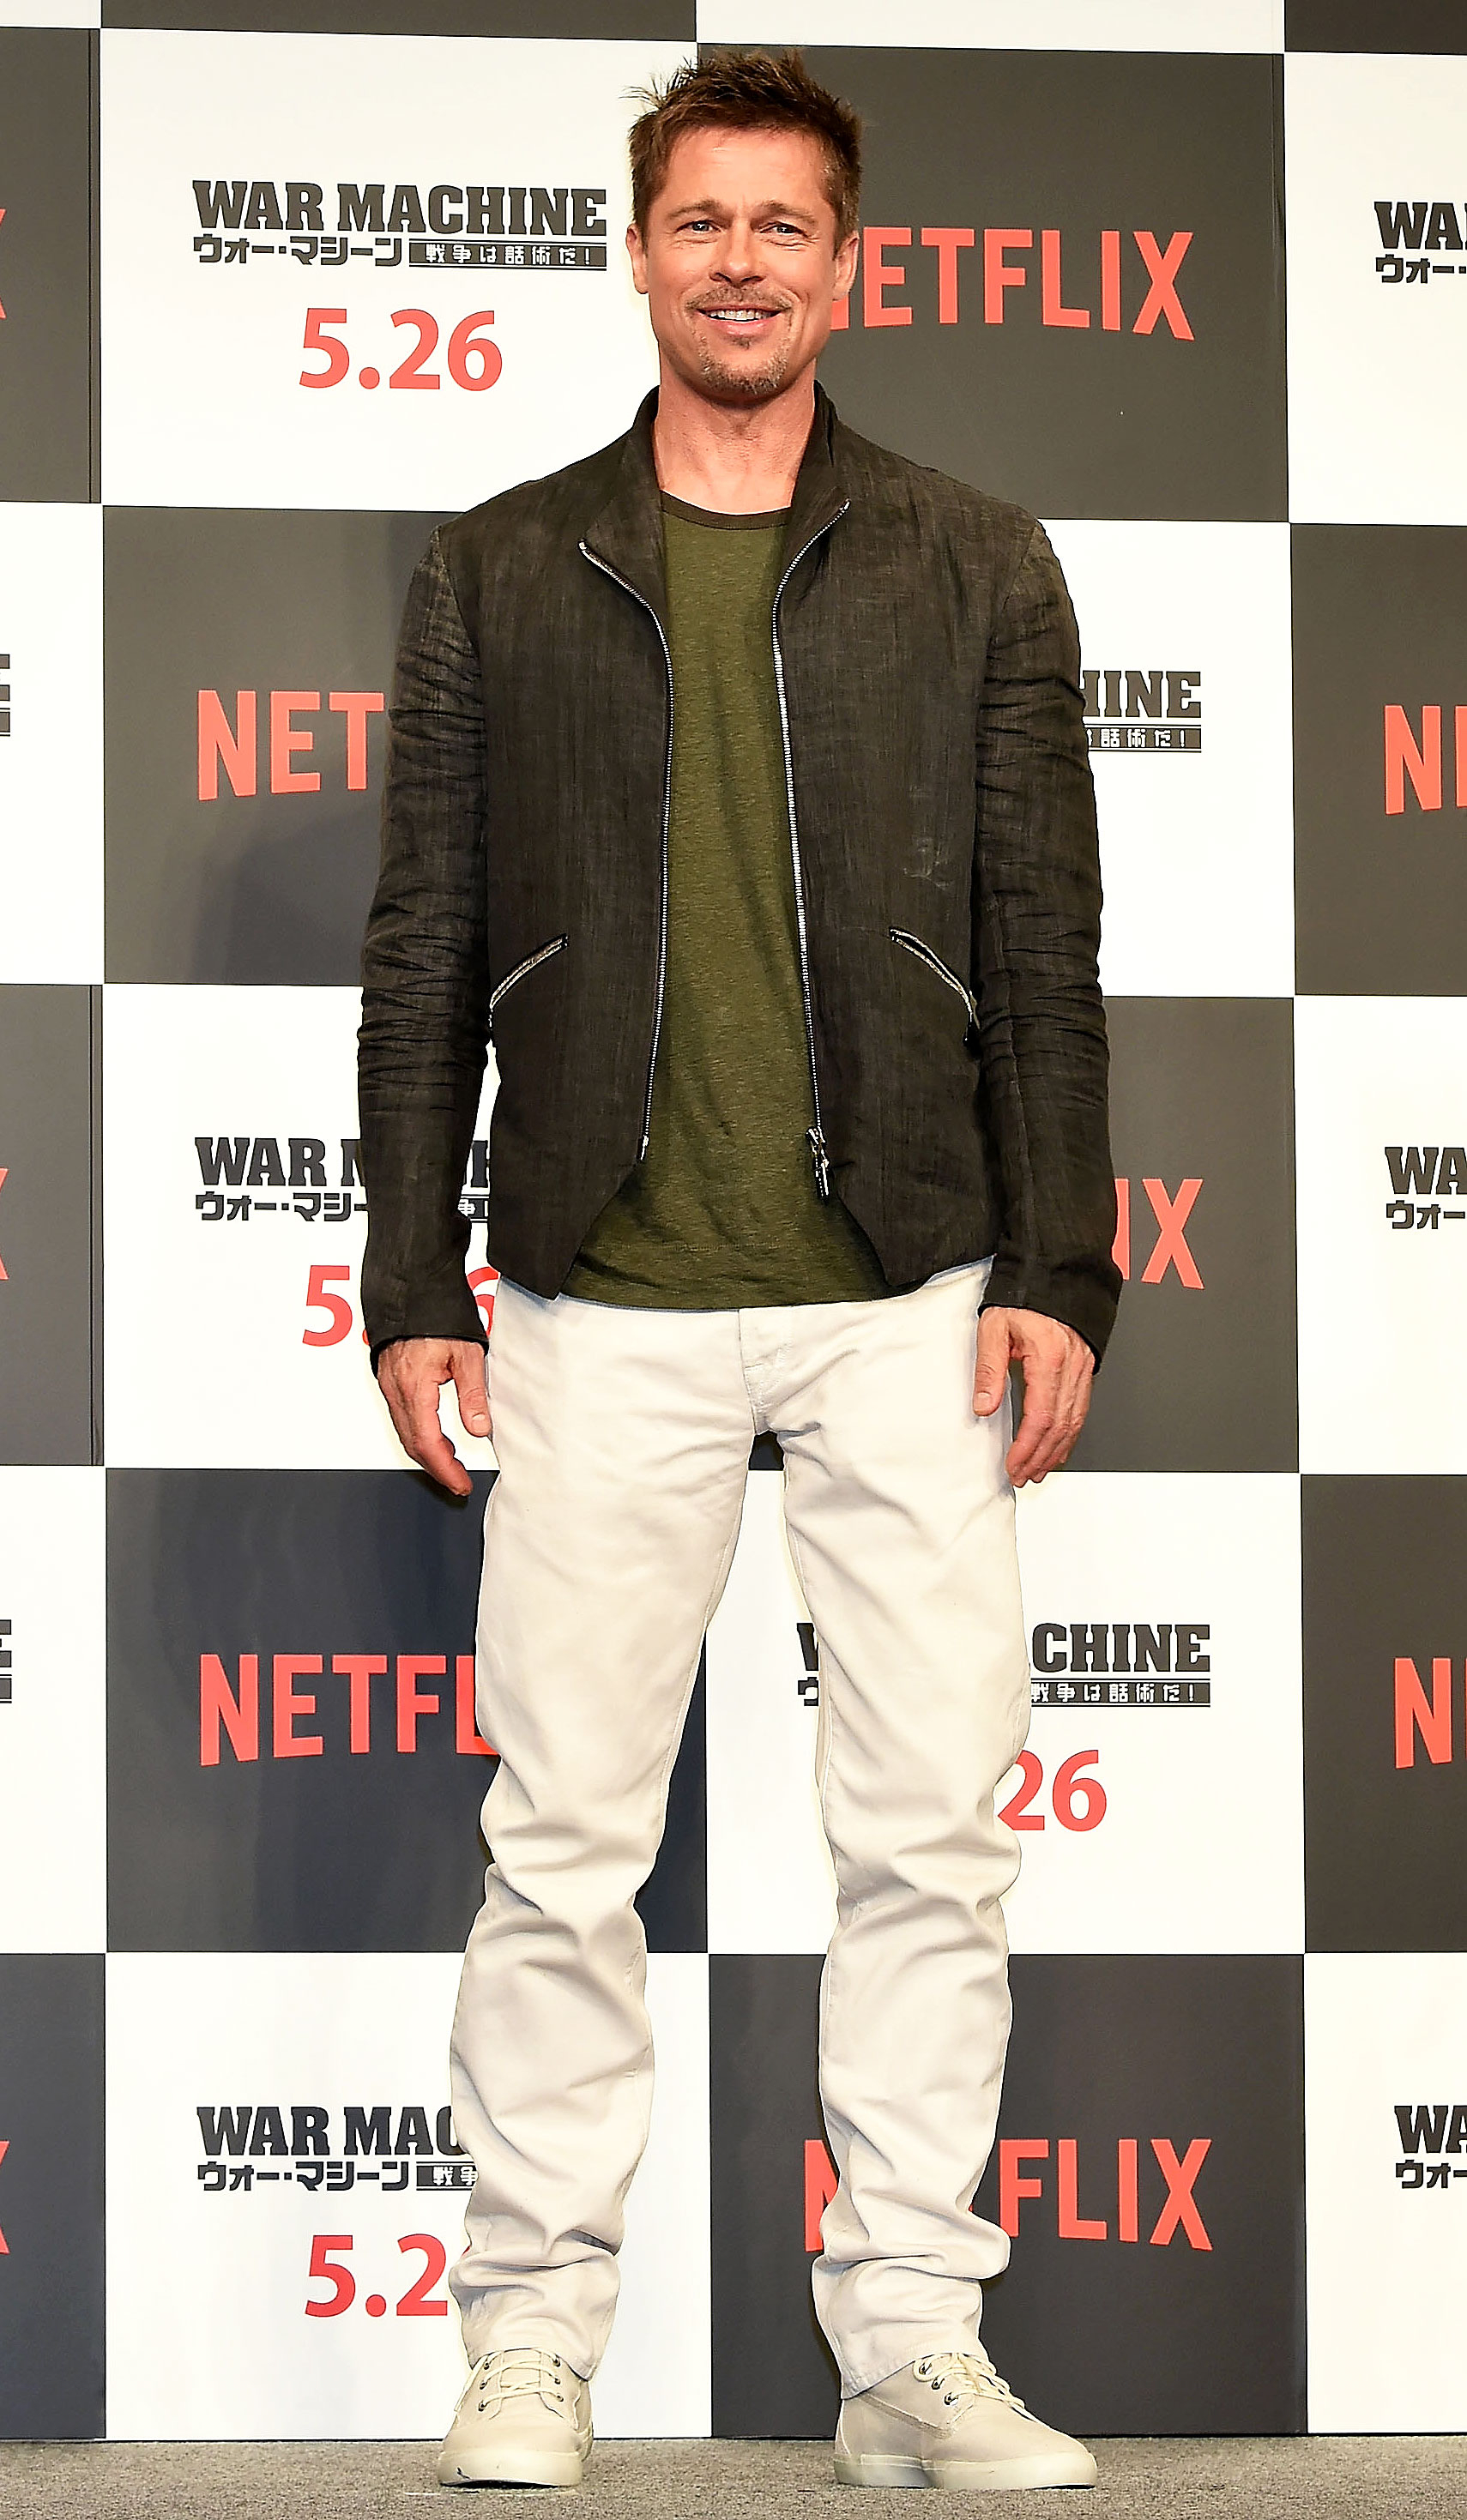 brad Pitt - The actor took a casual approach to his red carpet style at the War Machine conference in Tokyo, where he wore white pants and sneakers, an olive T-shirt and a light jacket on May 22, 2017.